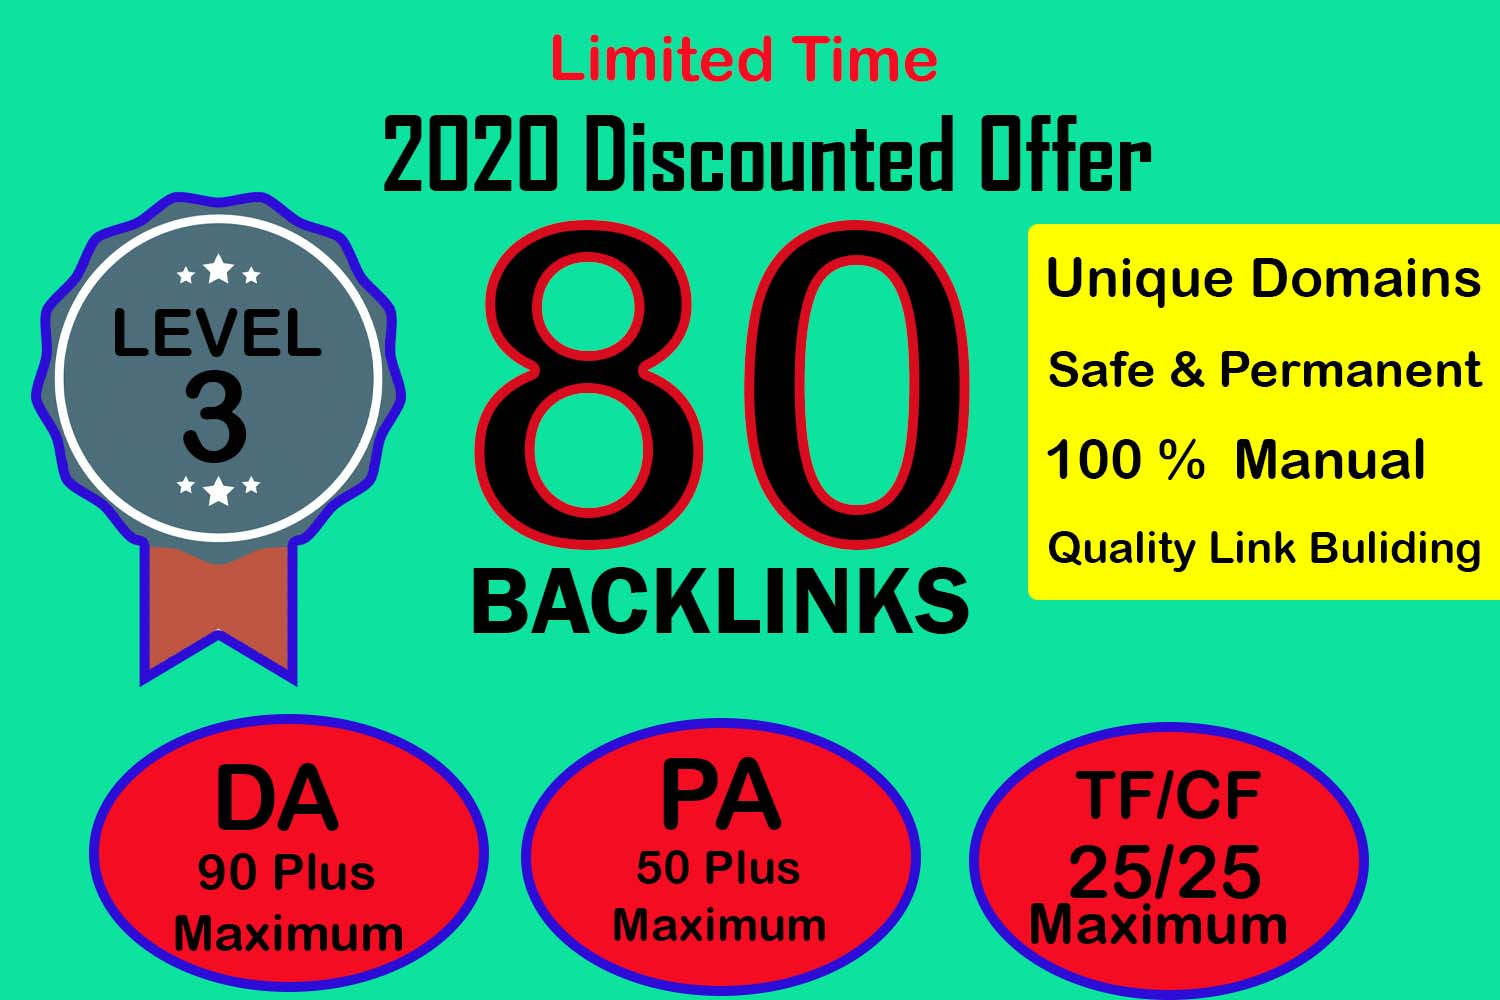 80 Manual Backlinks for Ranking On Google By Massive Authority Link Building 2020 Discounted offer